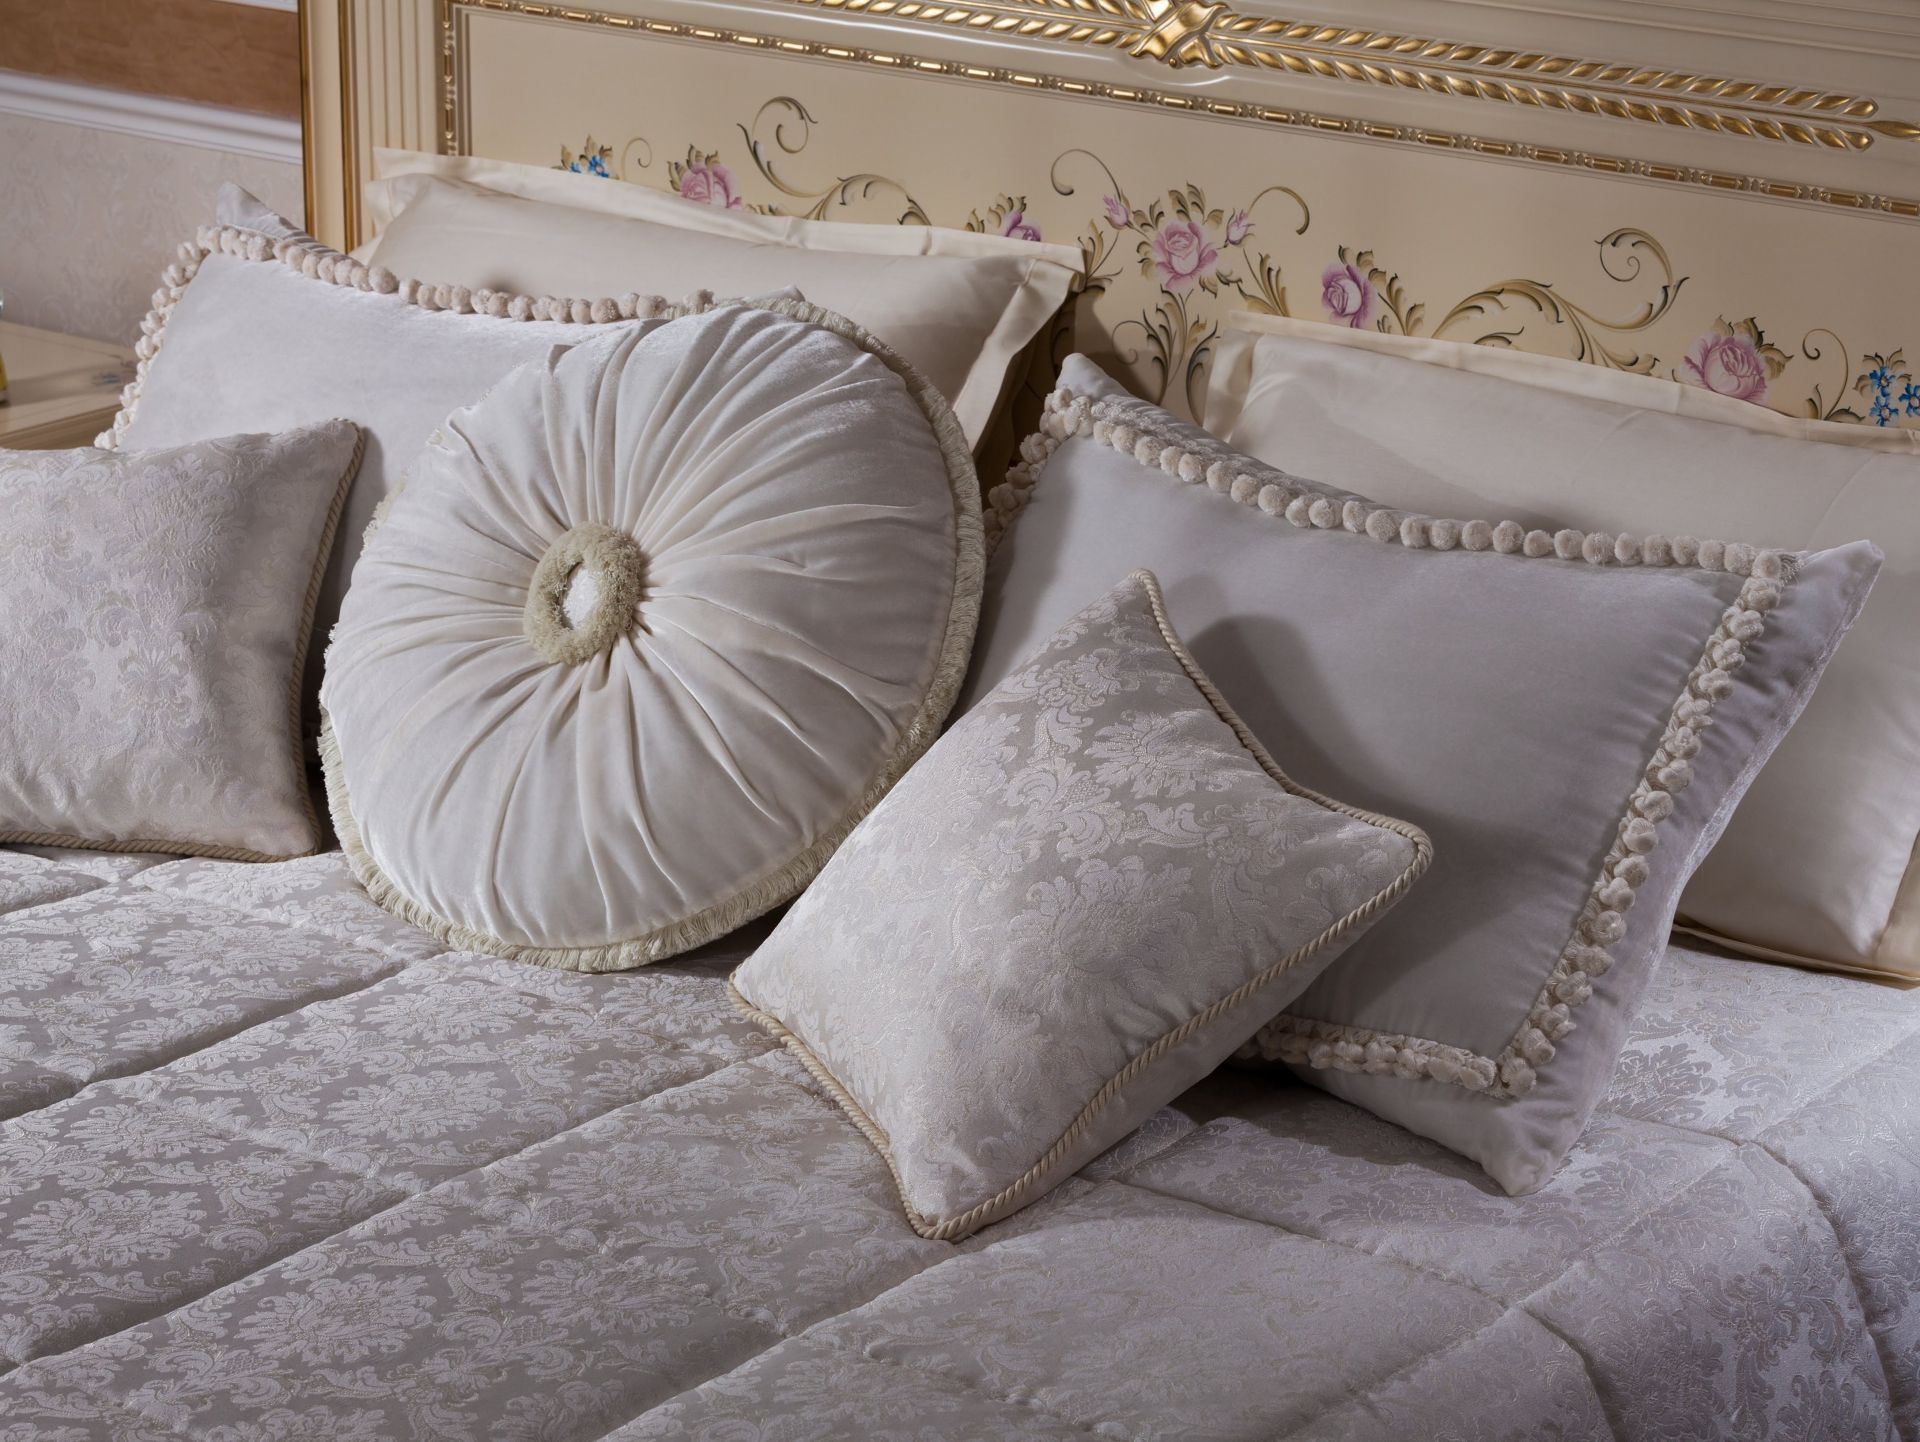 Decorative pillows for a bedroom